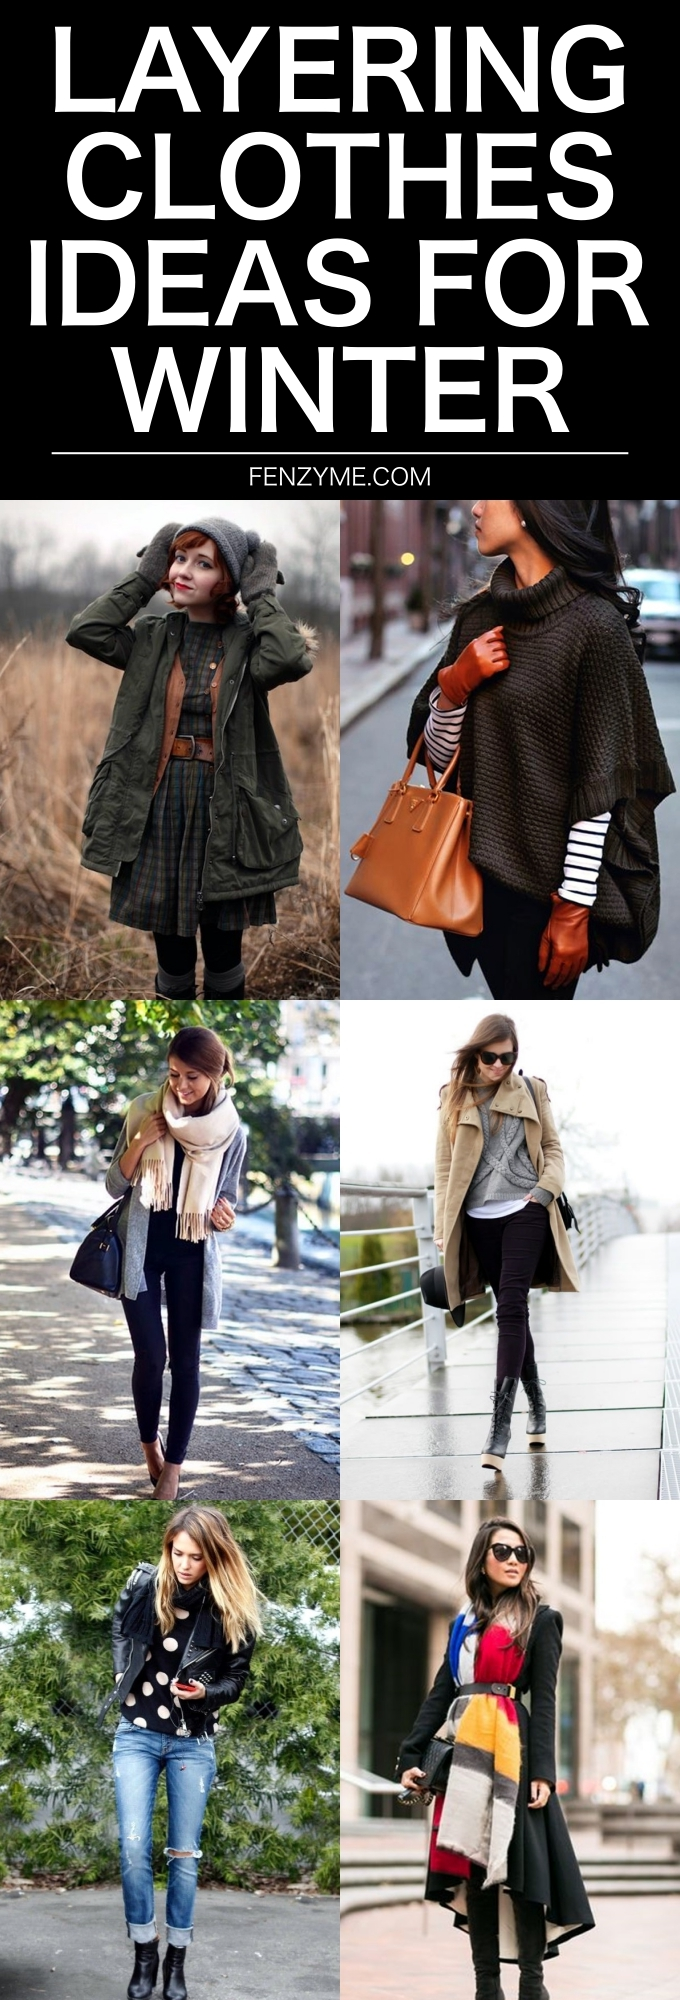 Layering Clothes Ideas for Winter